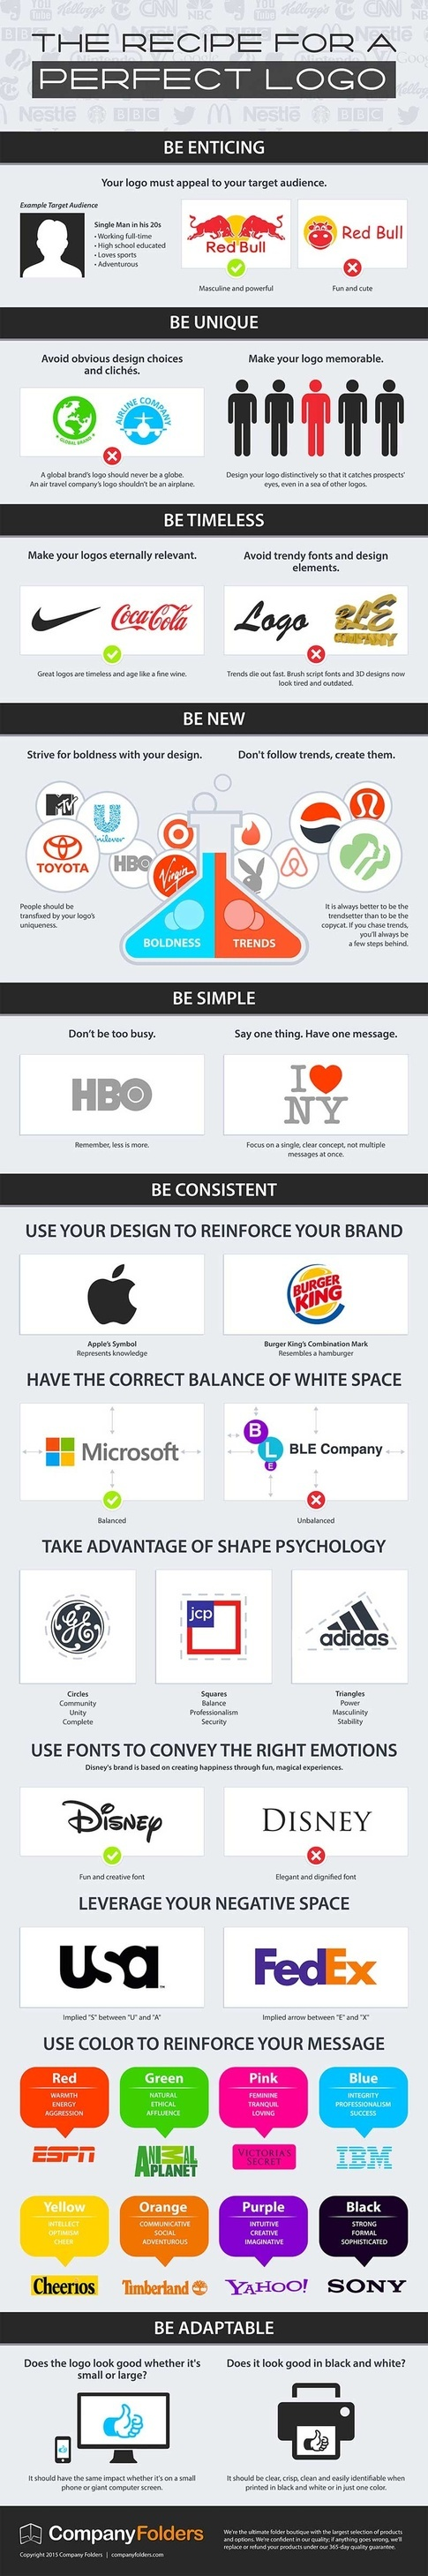 4 Around How Much Should I Charge For This Logo Quora Logo Design Infographic Logo Infographic Infographic Design